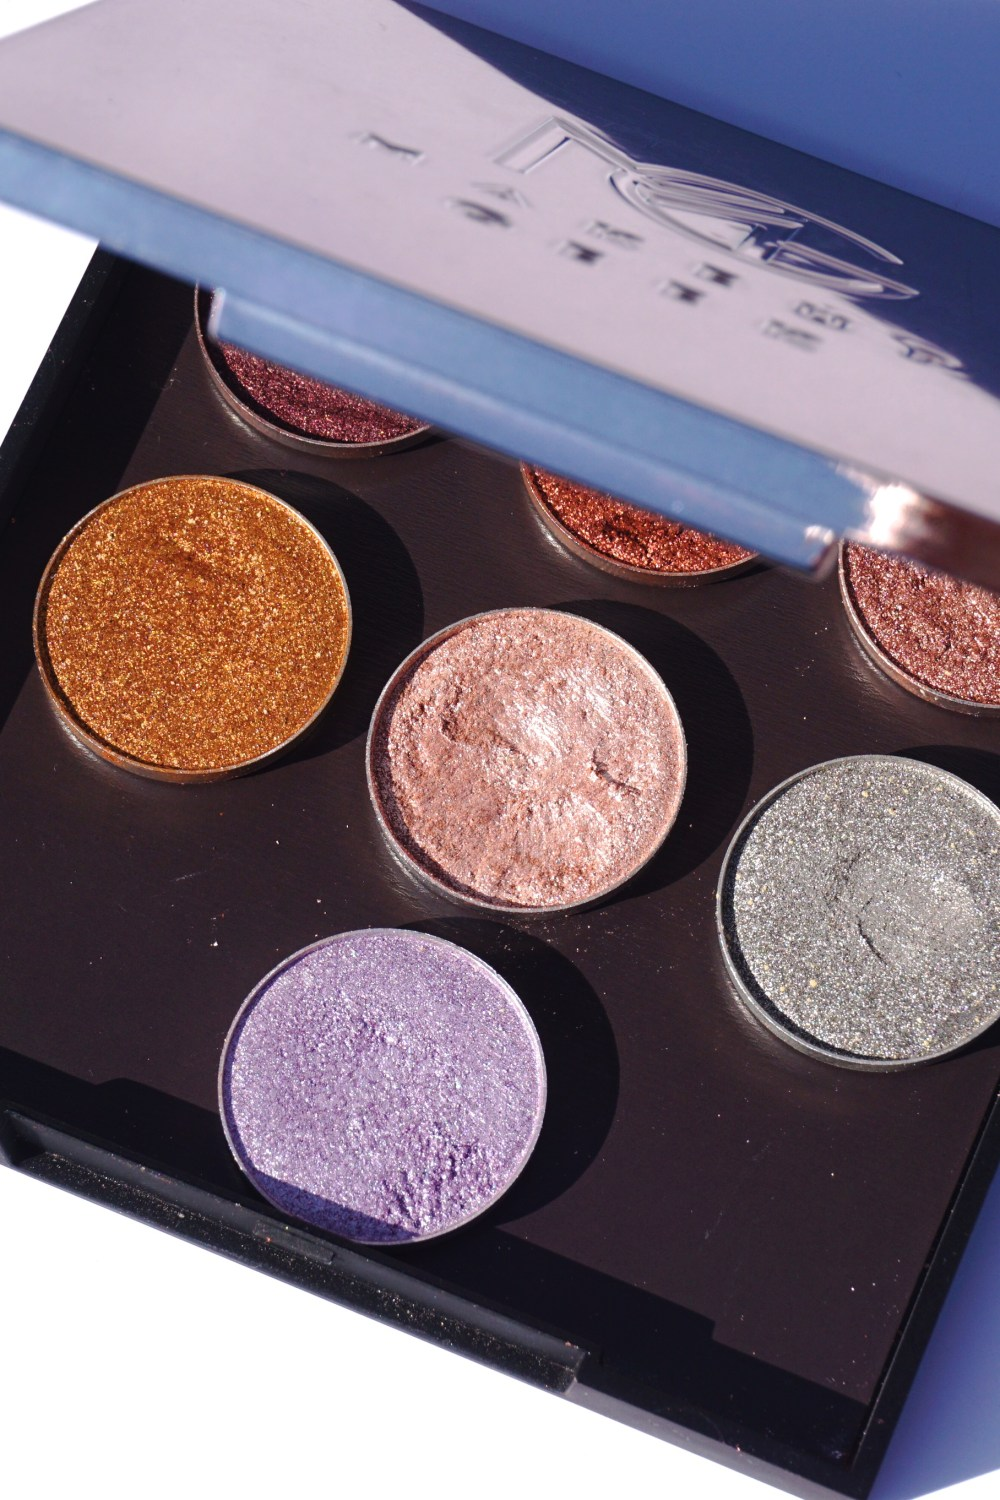 Makeup Geek Foiled Shadows!